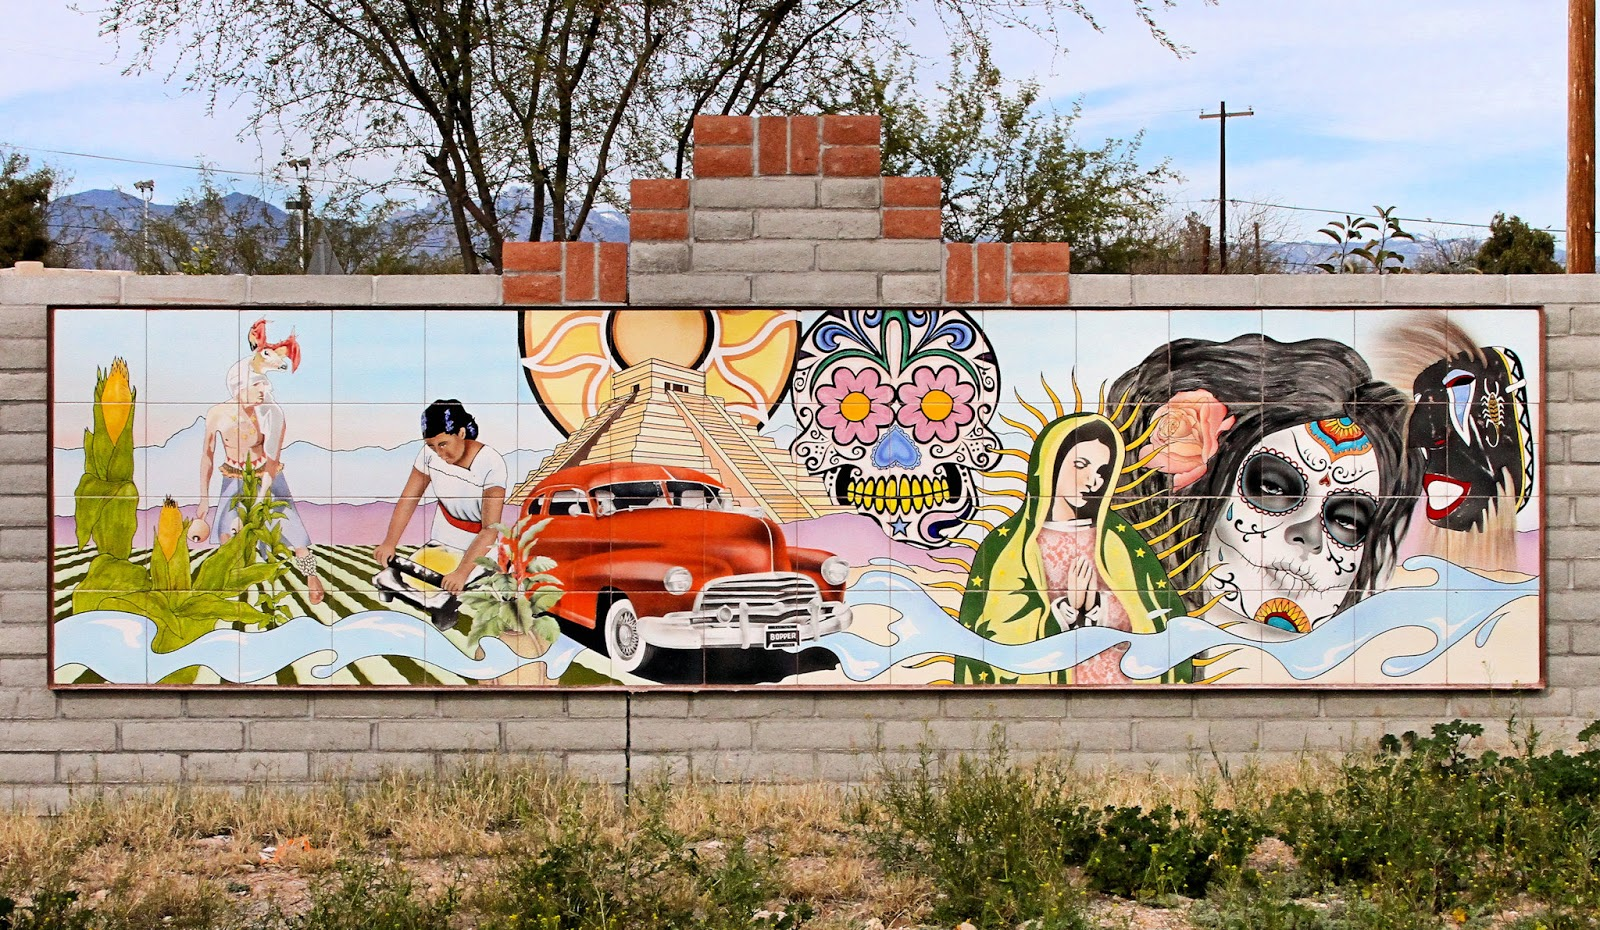 Primavera Foundation's Public Art Mural Beautiful